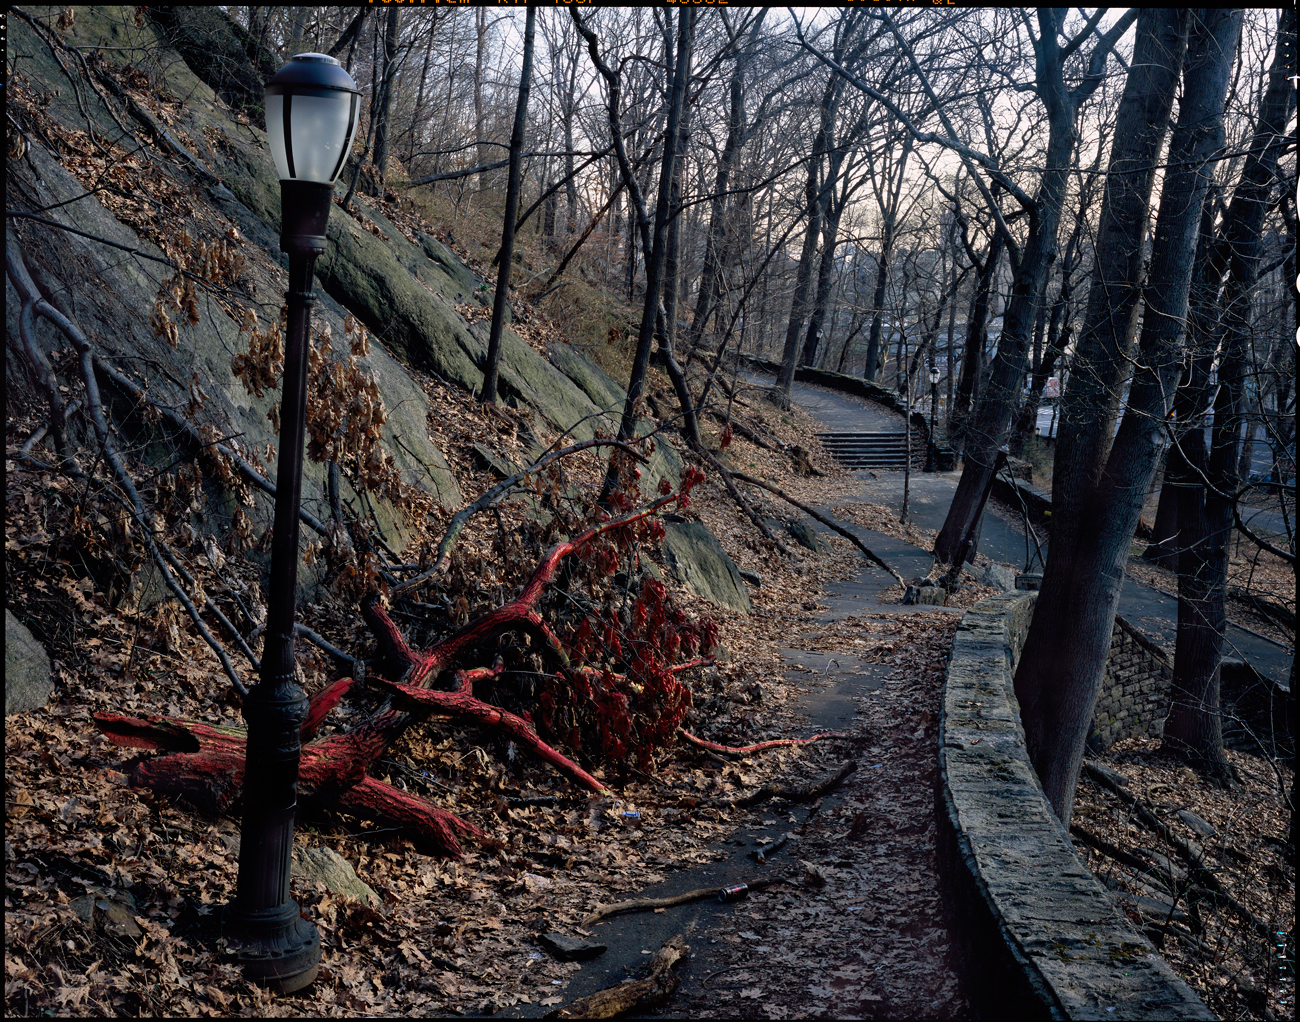 Fort Tryon Park, New York City, 2005